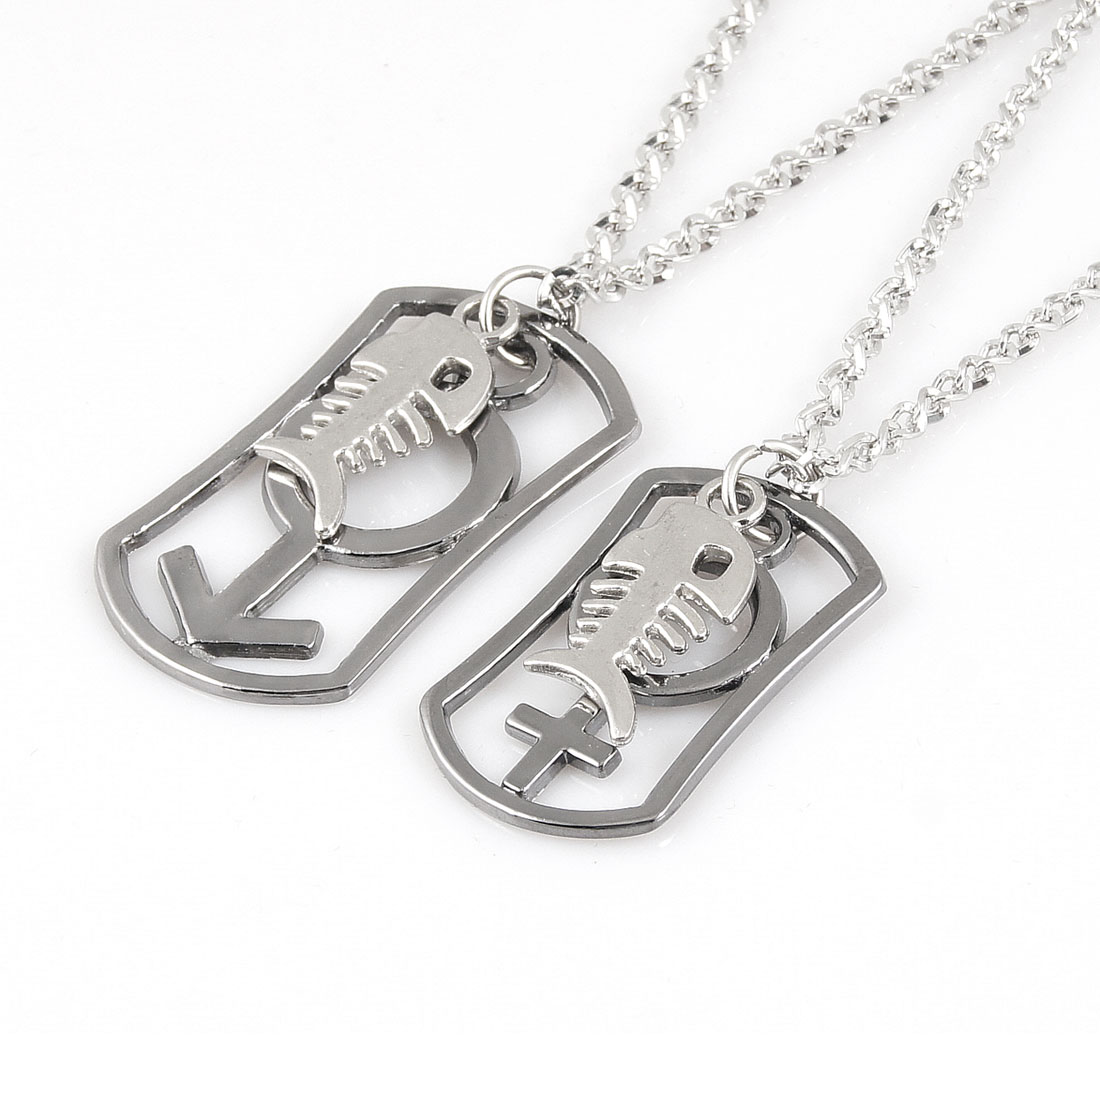 Lovers 2 Pcs Silver Tone Dog Tag Male Female Symbol Pendant Chocker Necklace